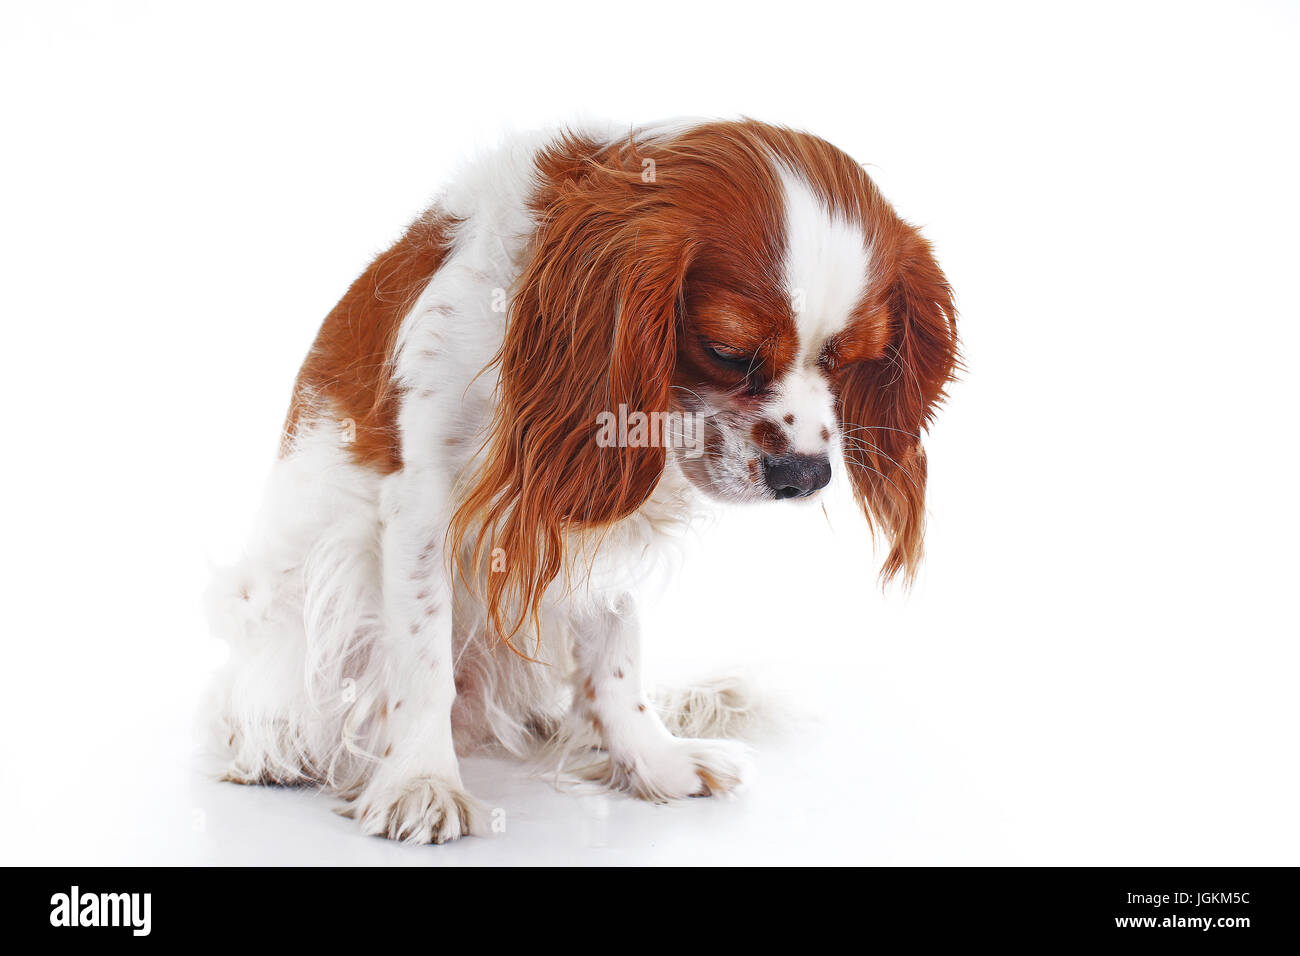 Sad dog. Cavalier king charles spaniel dog photo. Beautiful cute cavalier puppy dog on isolated white studio background. - Stock Image